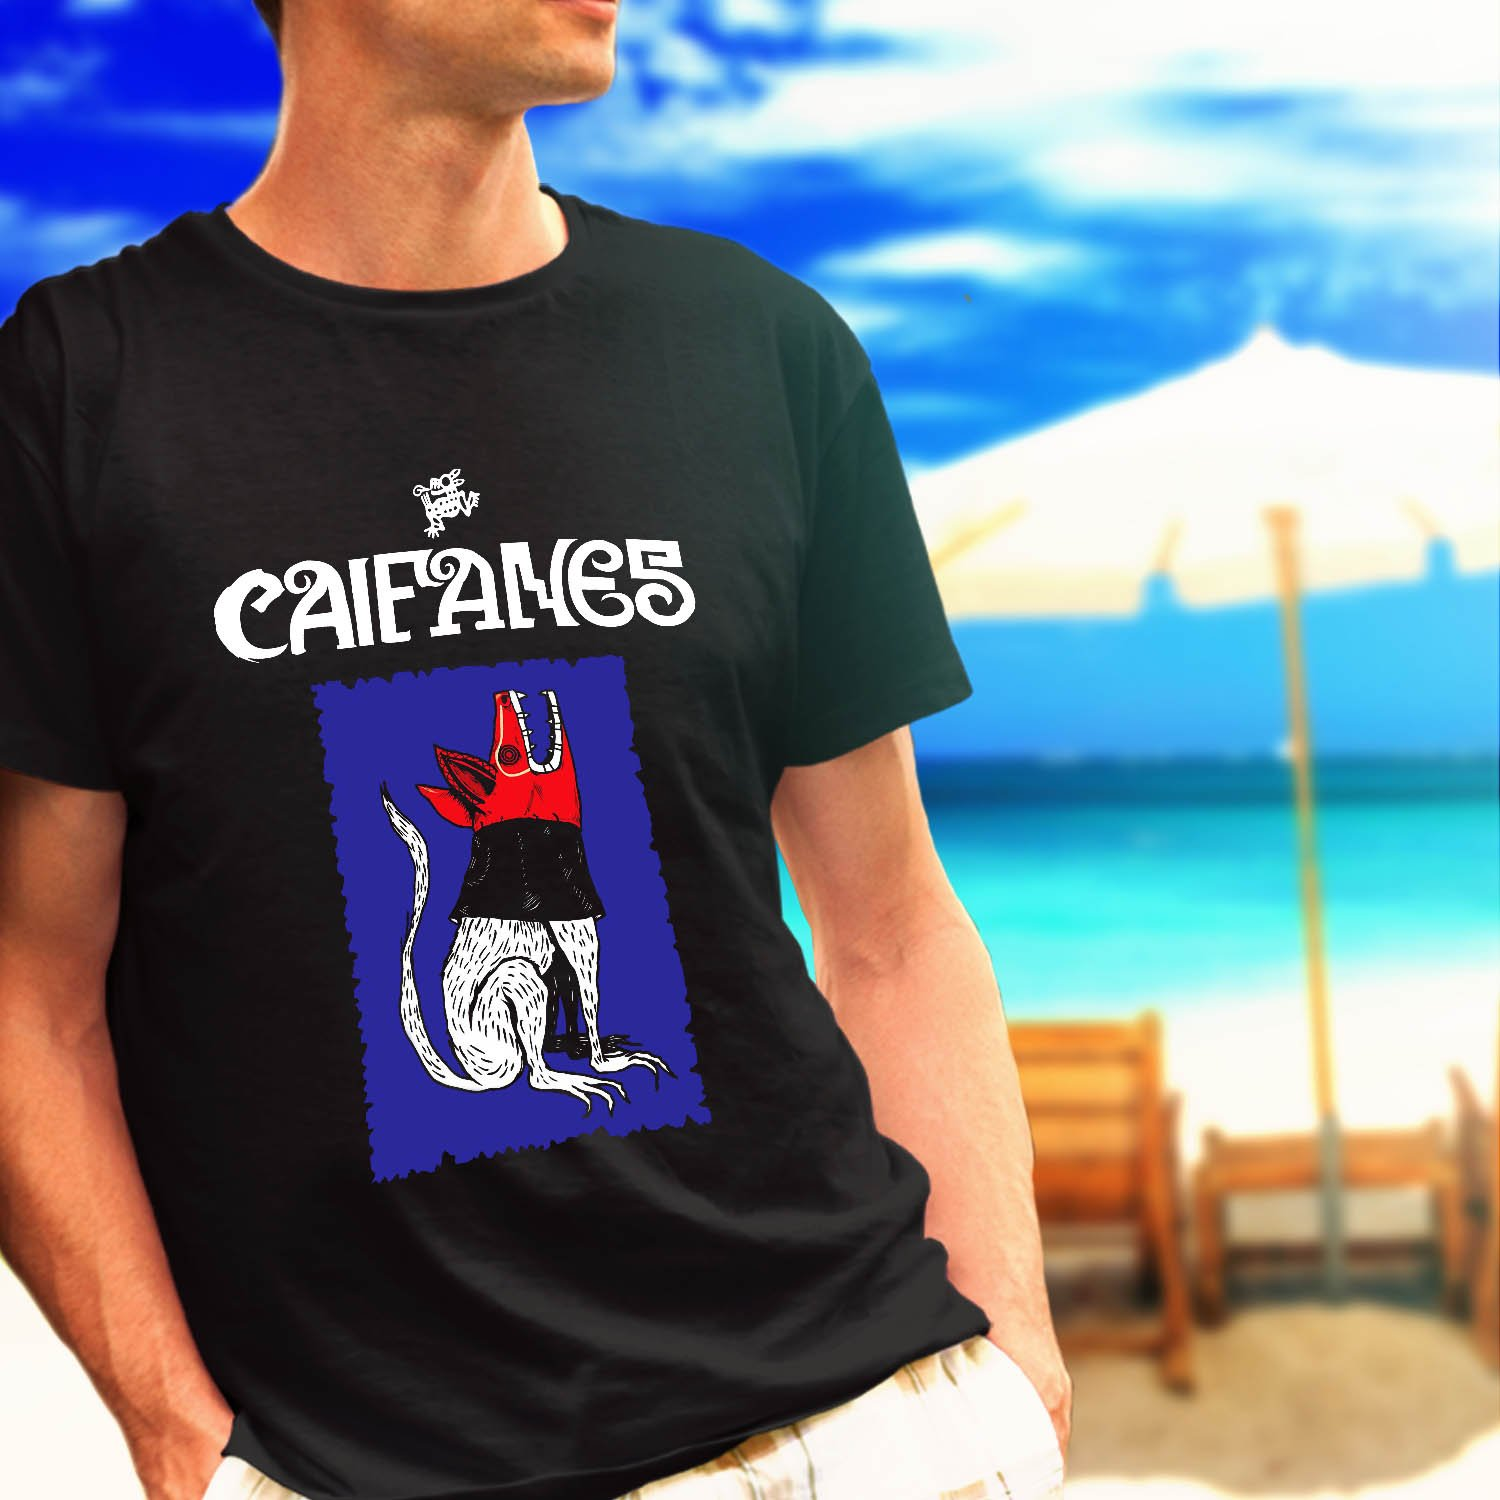 Caifanes Rock band tour concert black t-shirt tshirt shirts tee SIZE S